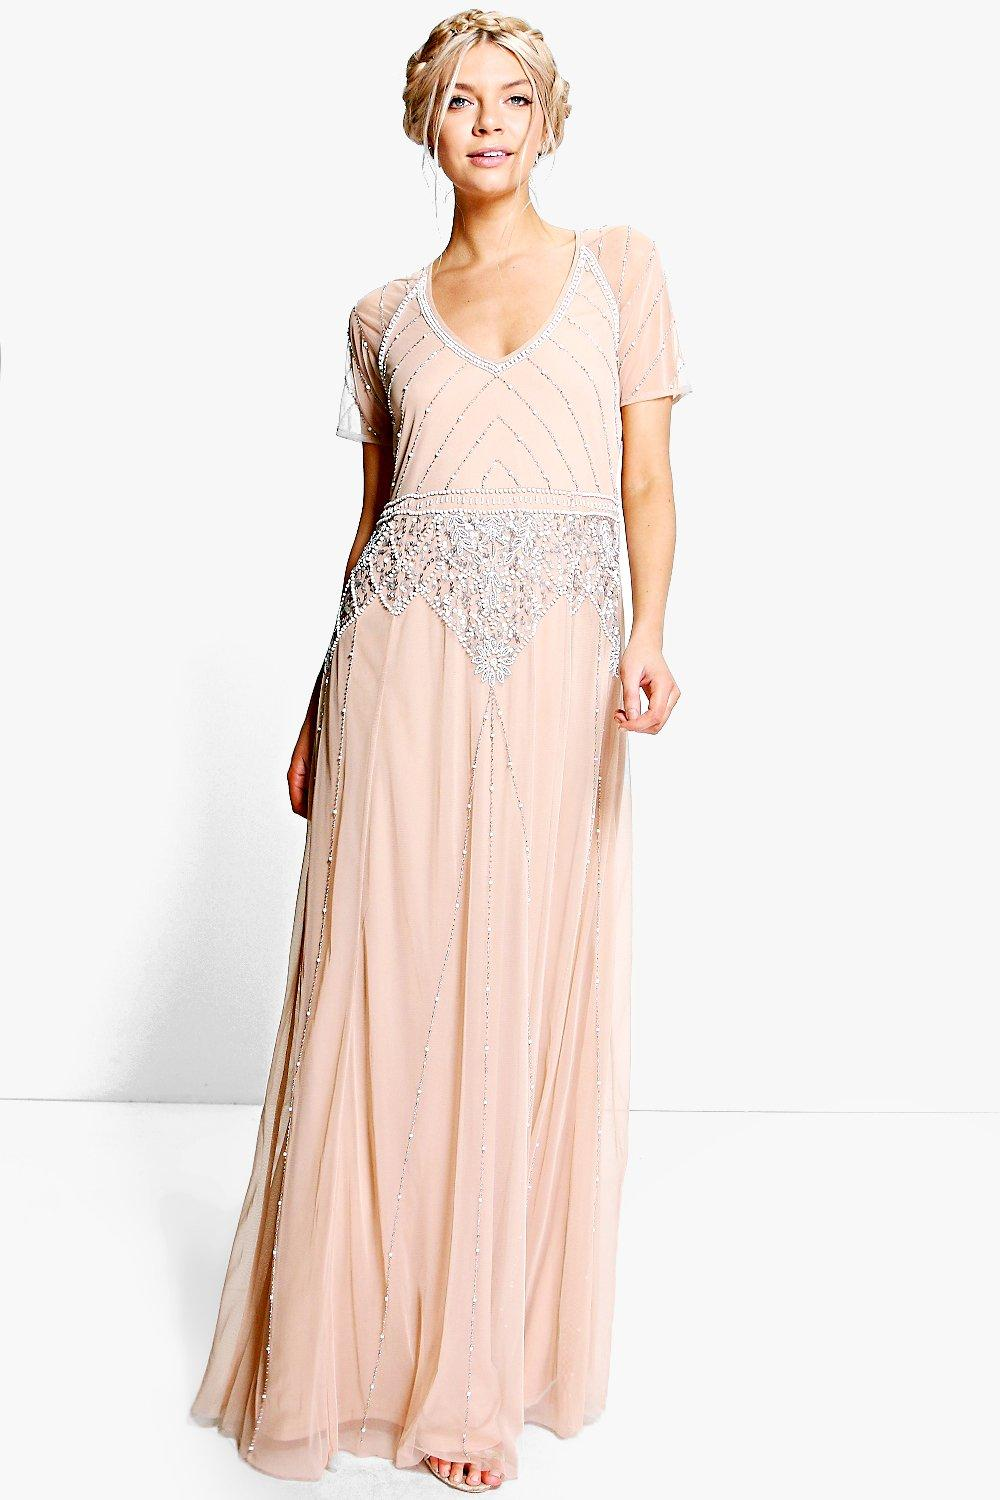 1930s Evening Dresses | Old Hollywood Silver Screen Dresses Womens Boutique Beaded Cap Sleeve Maxi Bridesmaid Dress - Beige - 10 $28.00 AT vintagedancer.com